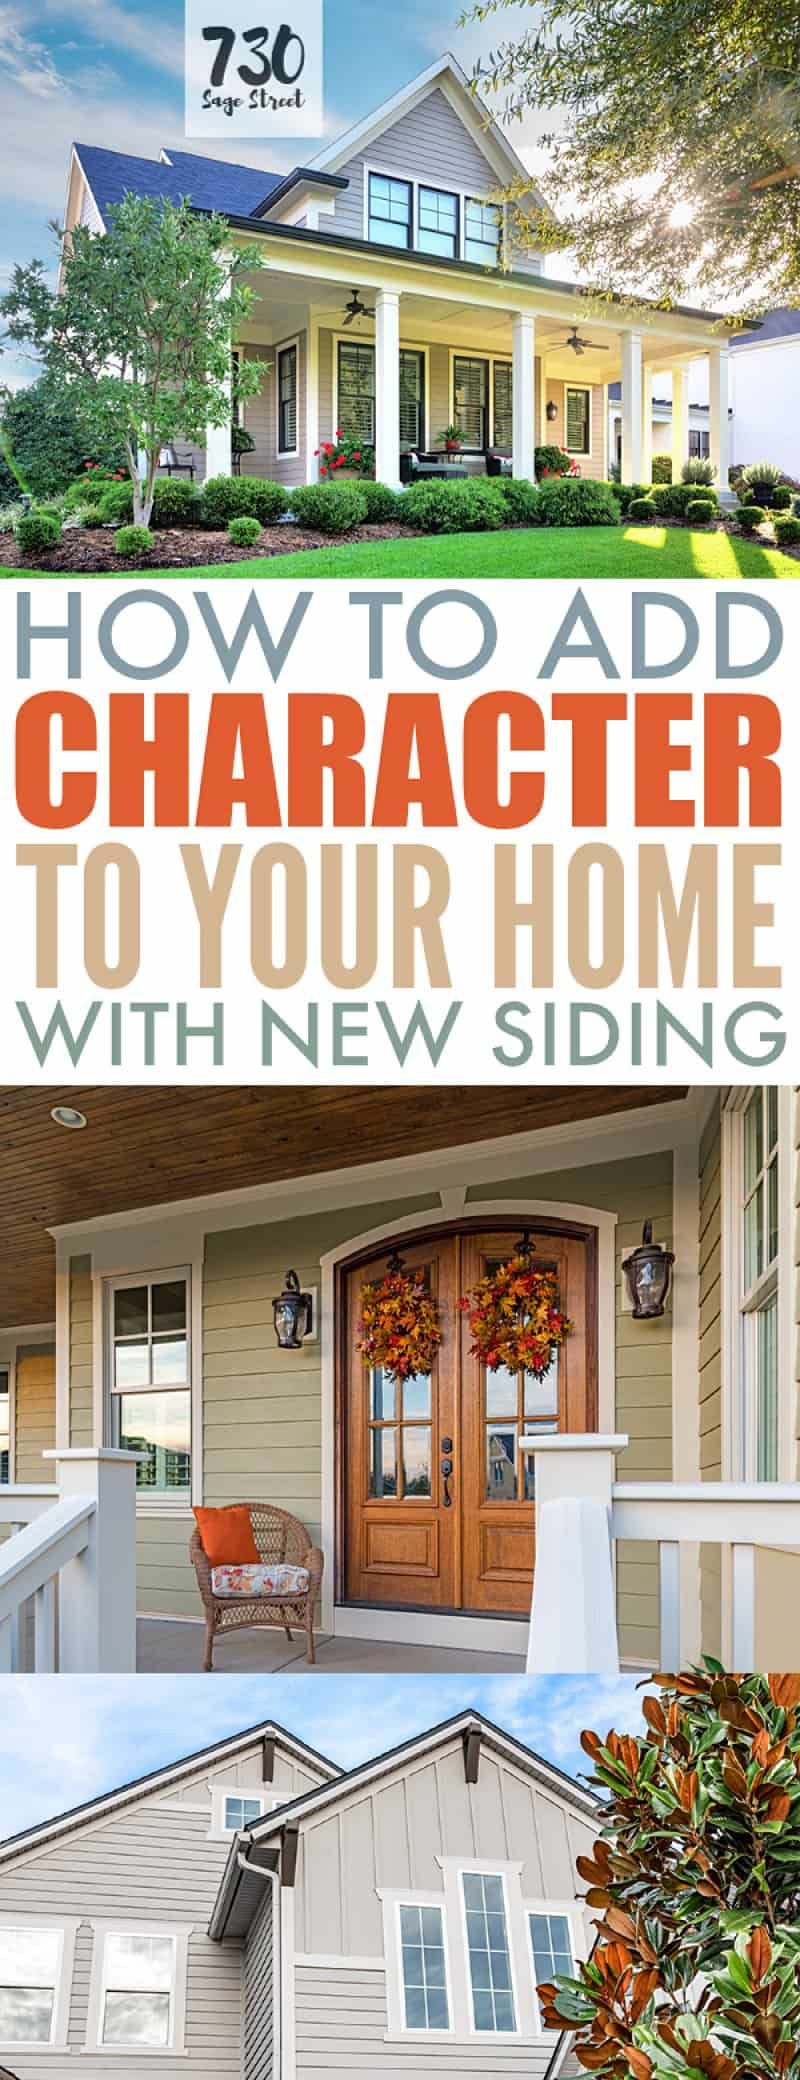 Add Character To Your Home With James Hardie Siding Hardie Siding James Hardie Siding Exterior House Siding